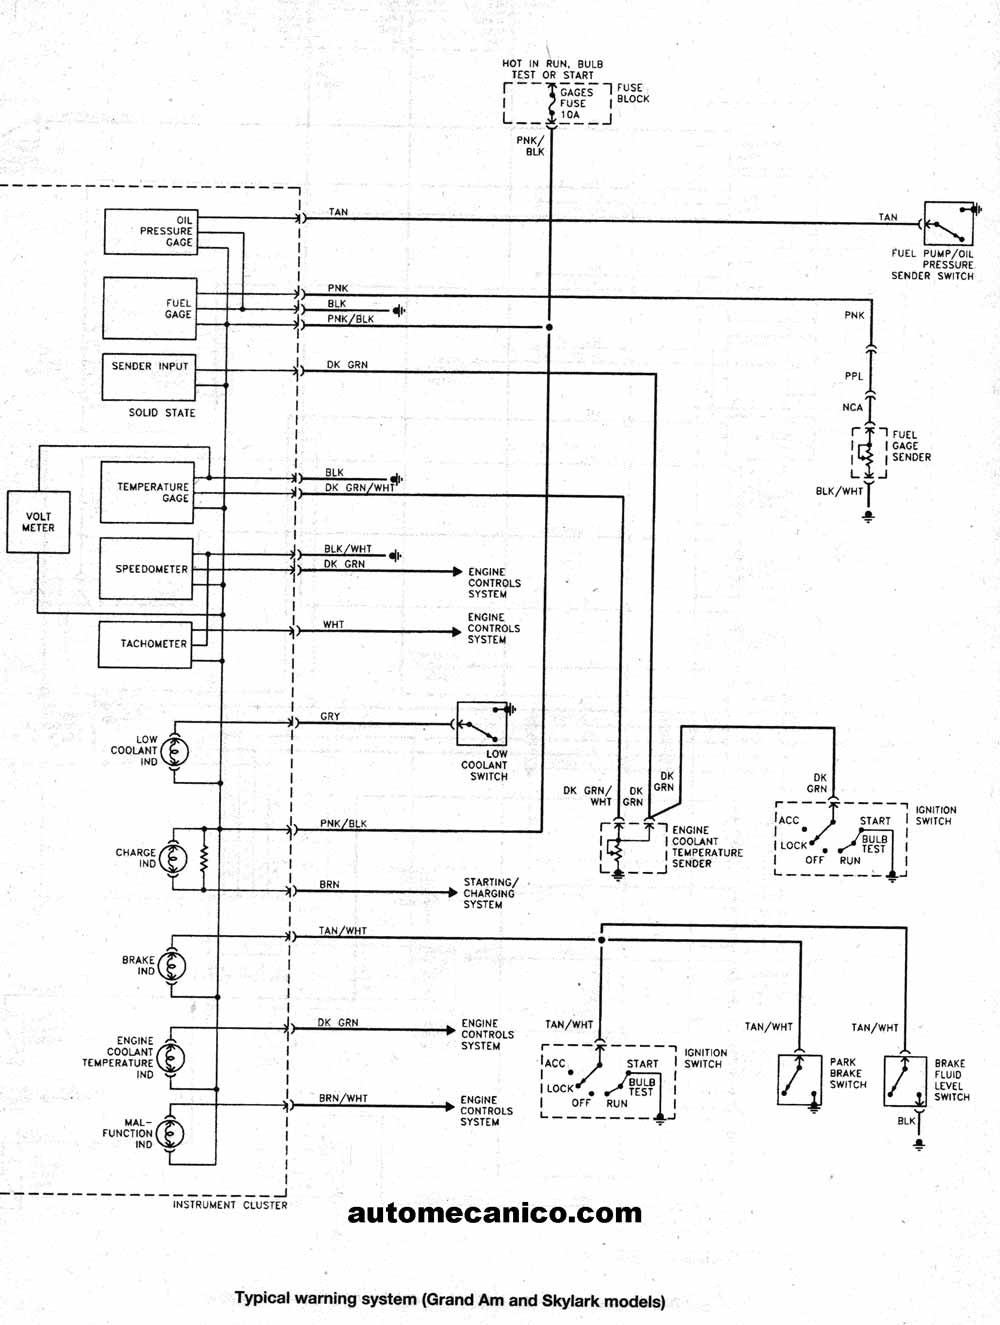 97 grand am wiring diagram get free image about wiring Pontiac Grand AM Parts Diagram Pontiac 3.4 Engine Diagram